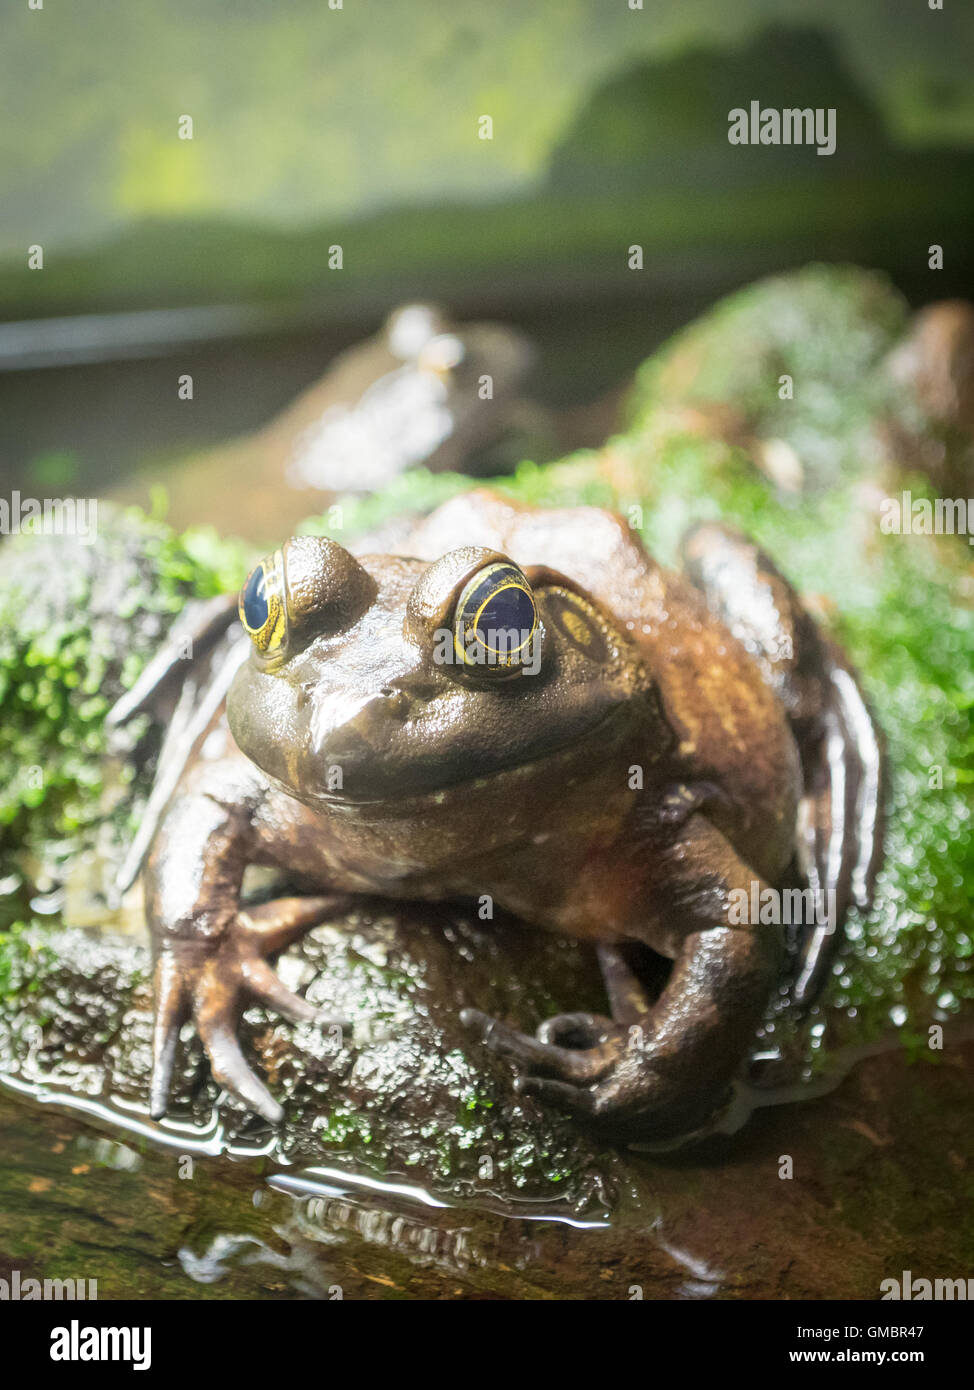 An American bullfrog (Lithobates catesbeianus or Rana catesbeiana) in captivity at the Vancouver Aquarium, in Vancouver, Stock Photo